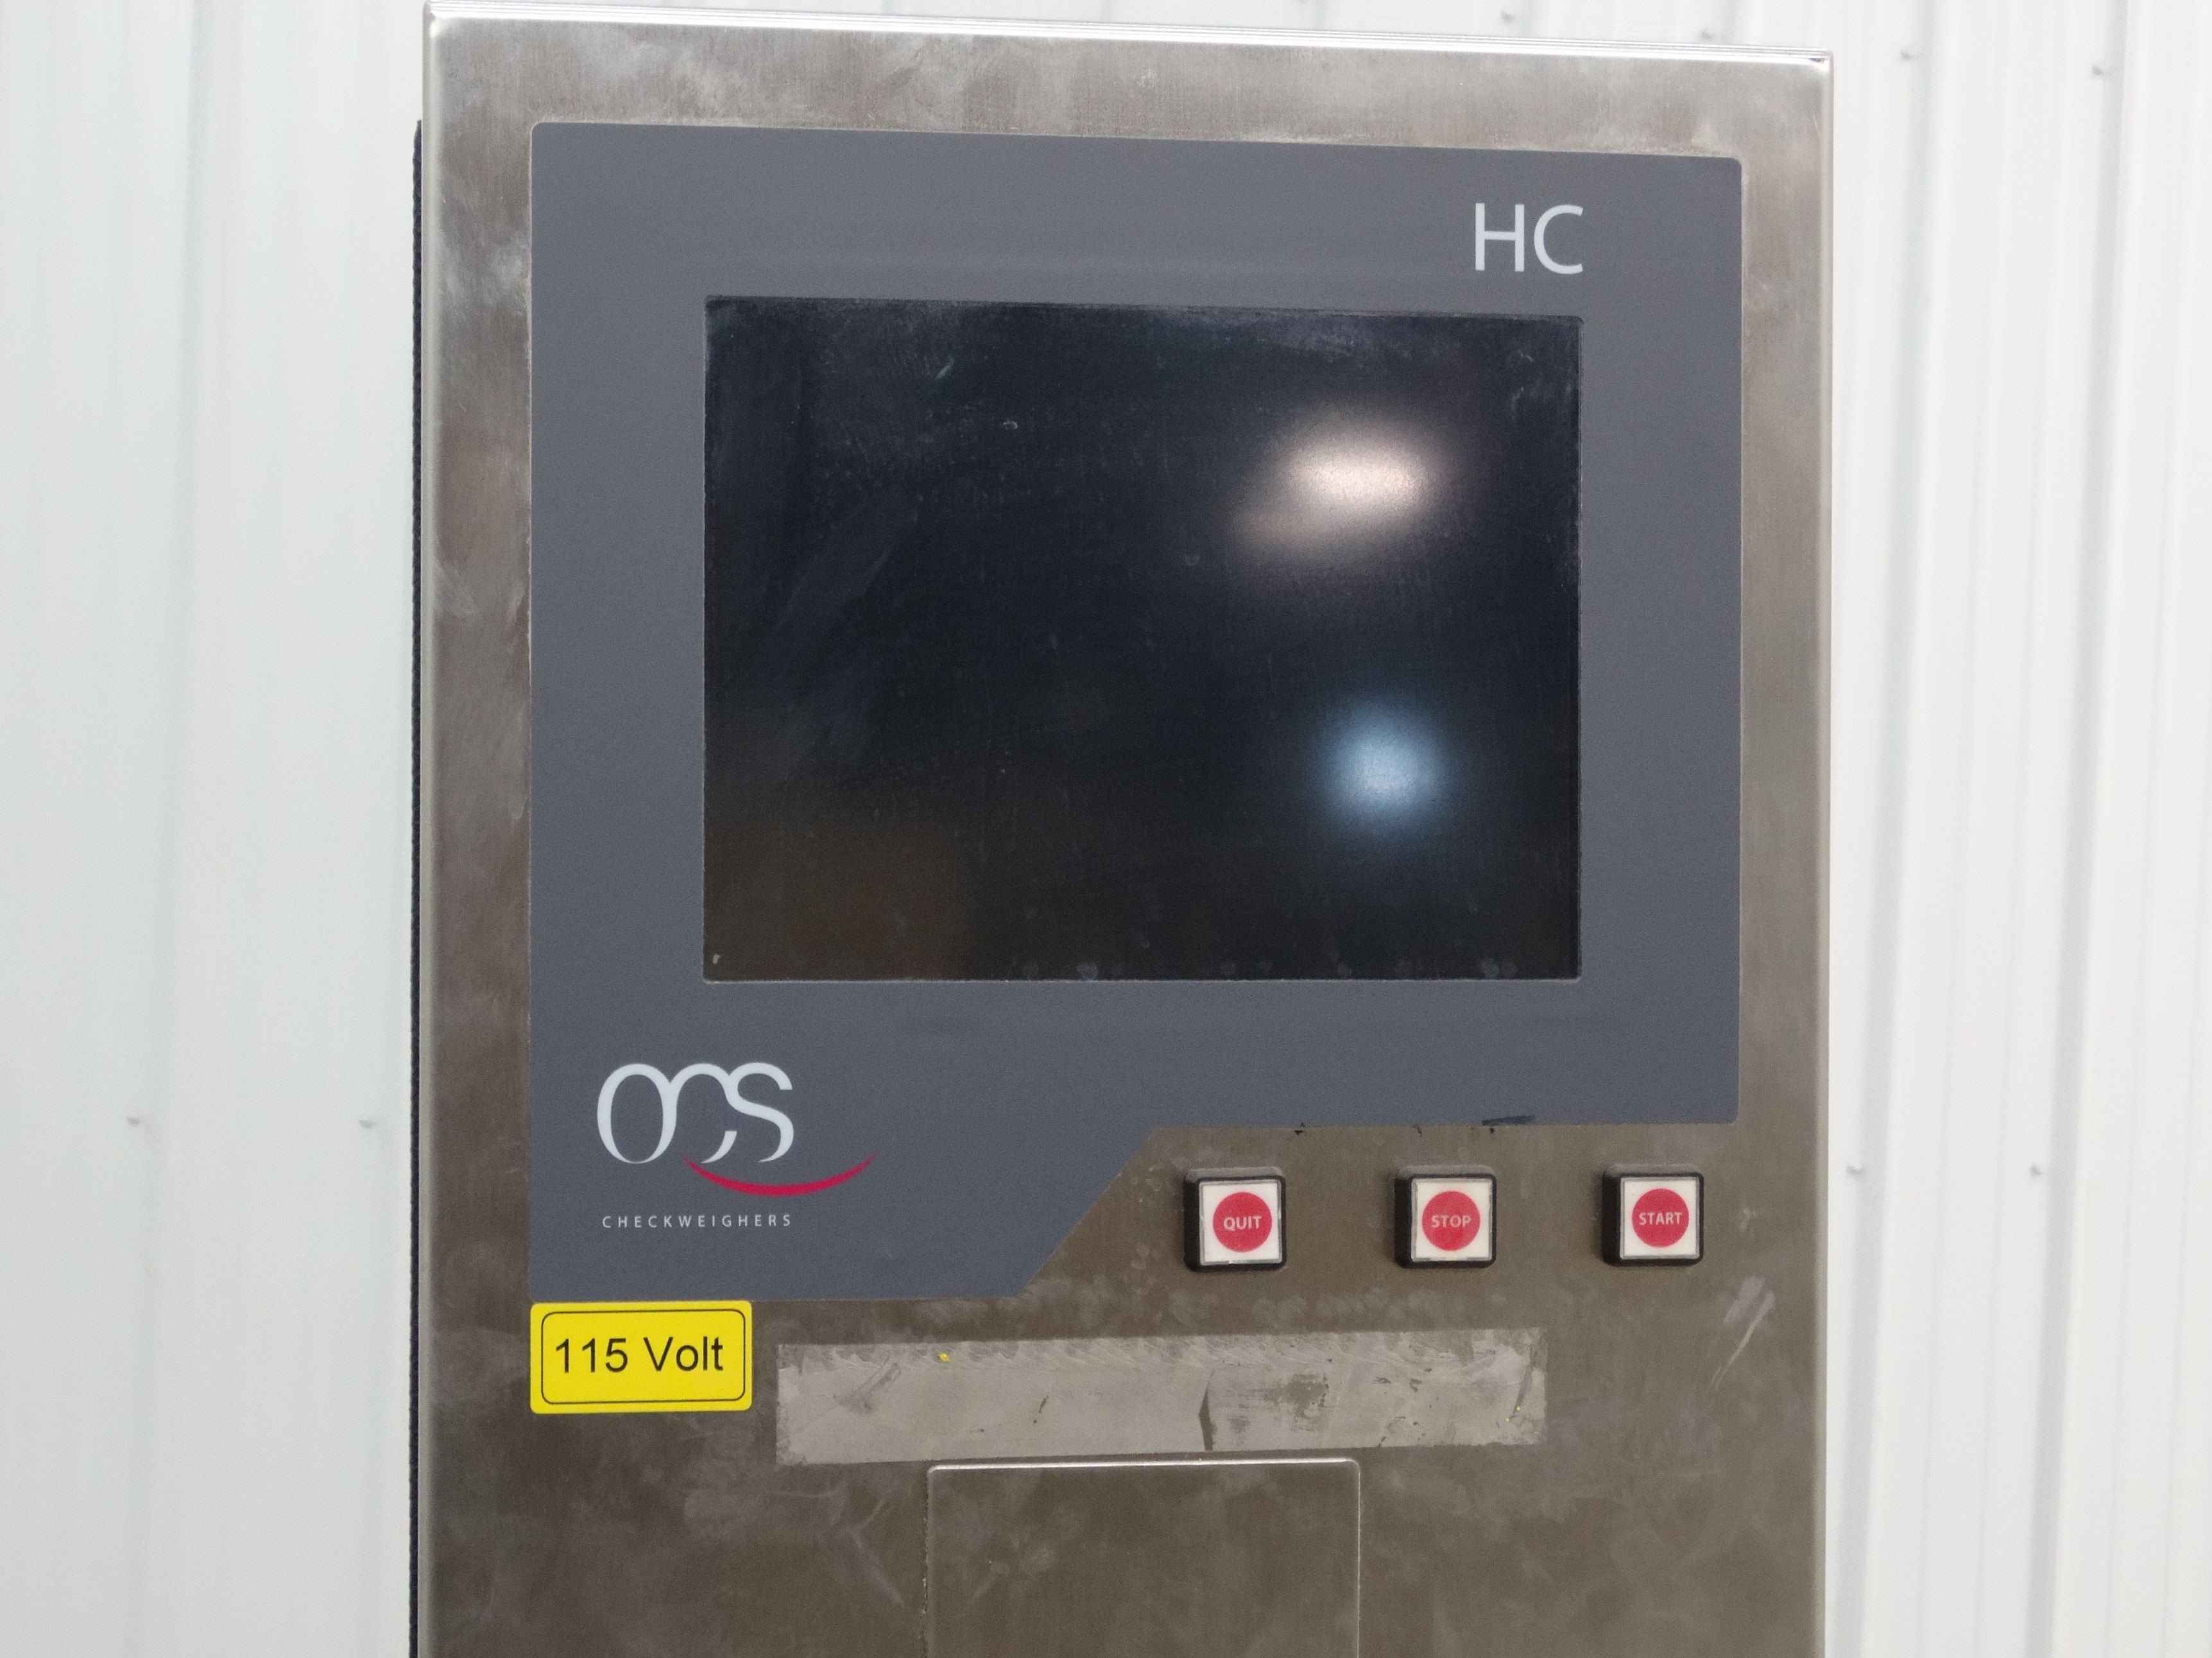 OCS Checkweighers HC Dual Lane Checkweigher D1525 - Image 5 of 8